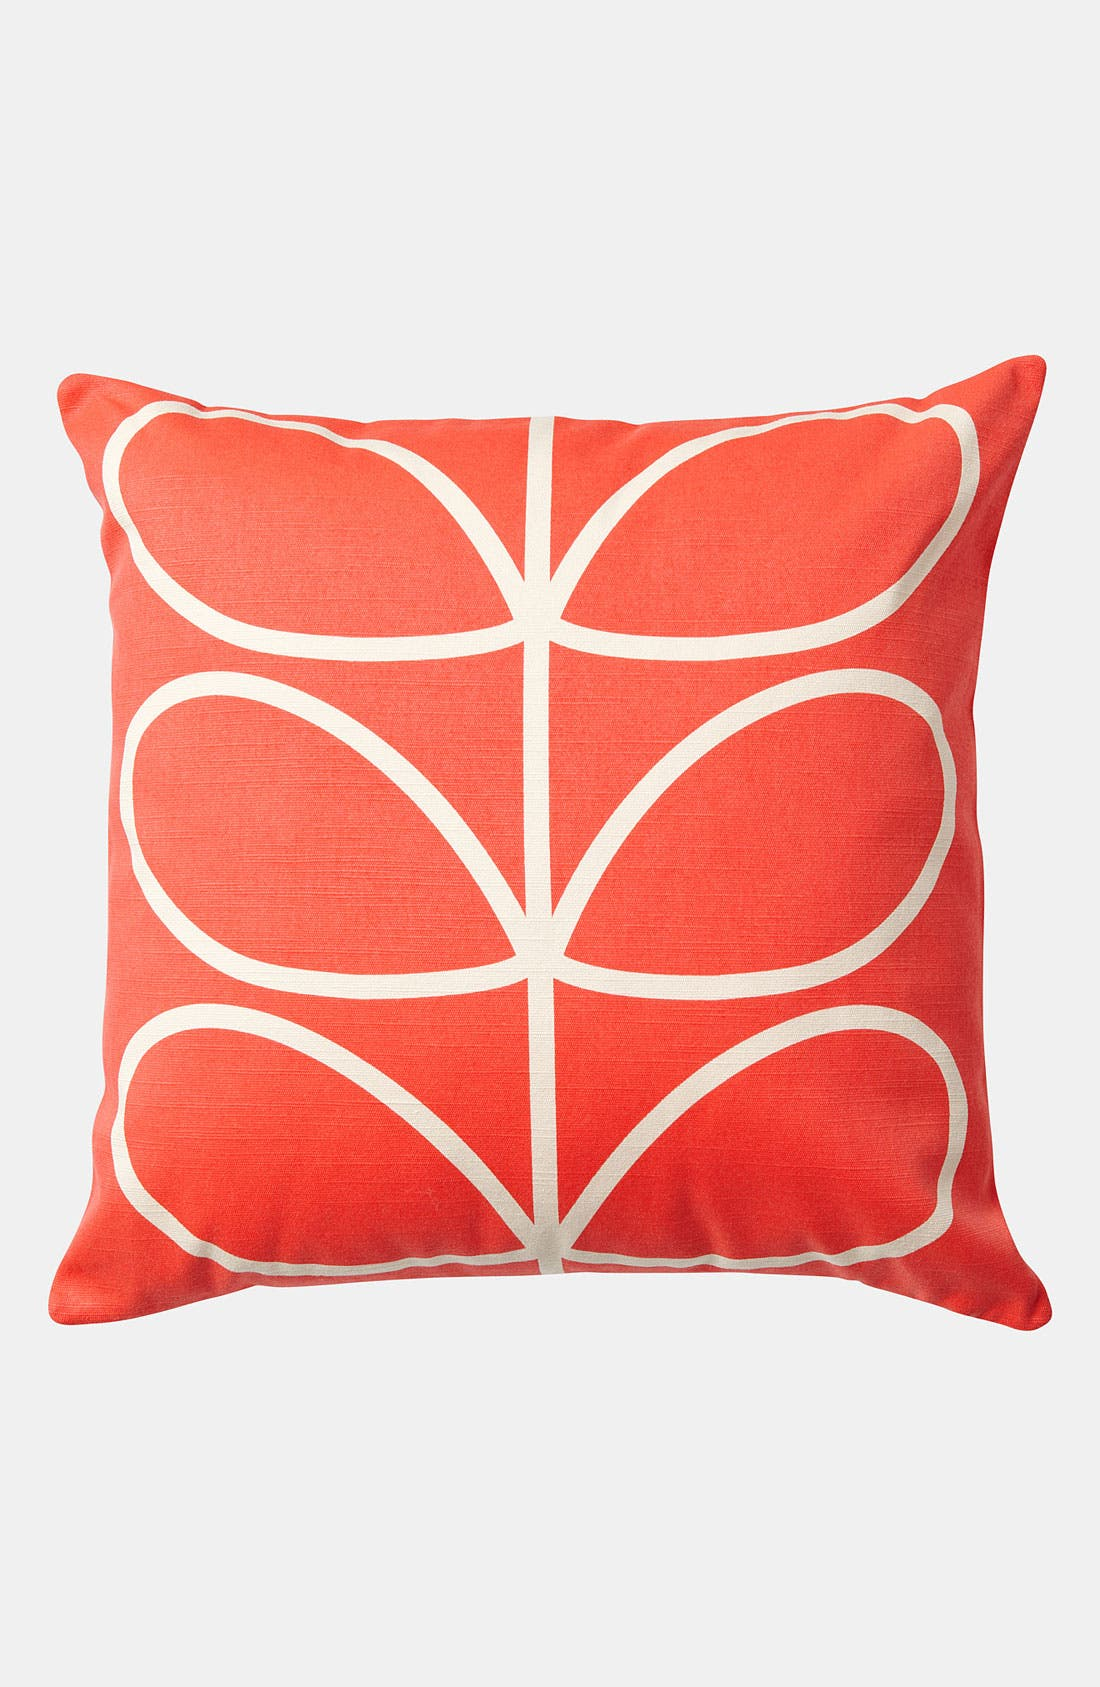 Main Image - Orla Kiely 'Linear Stem' Pillow